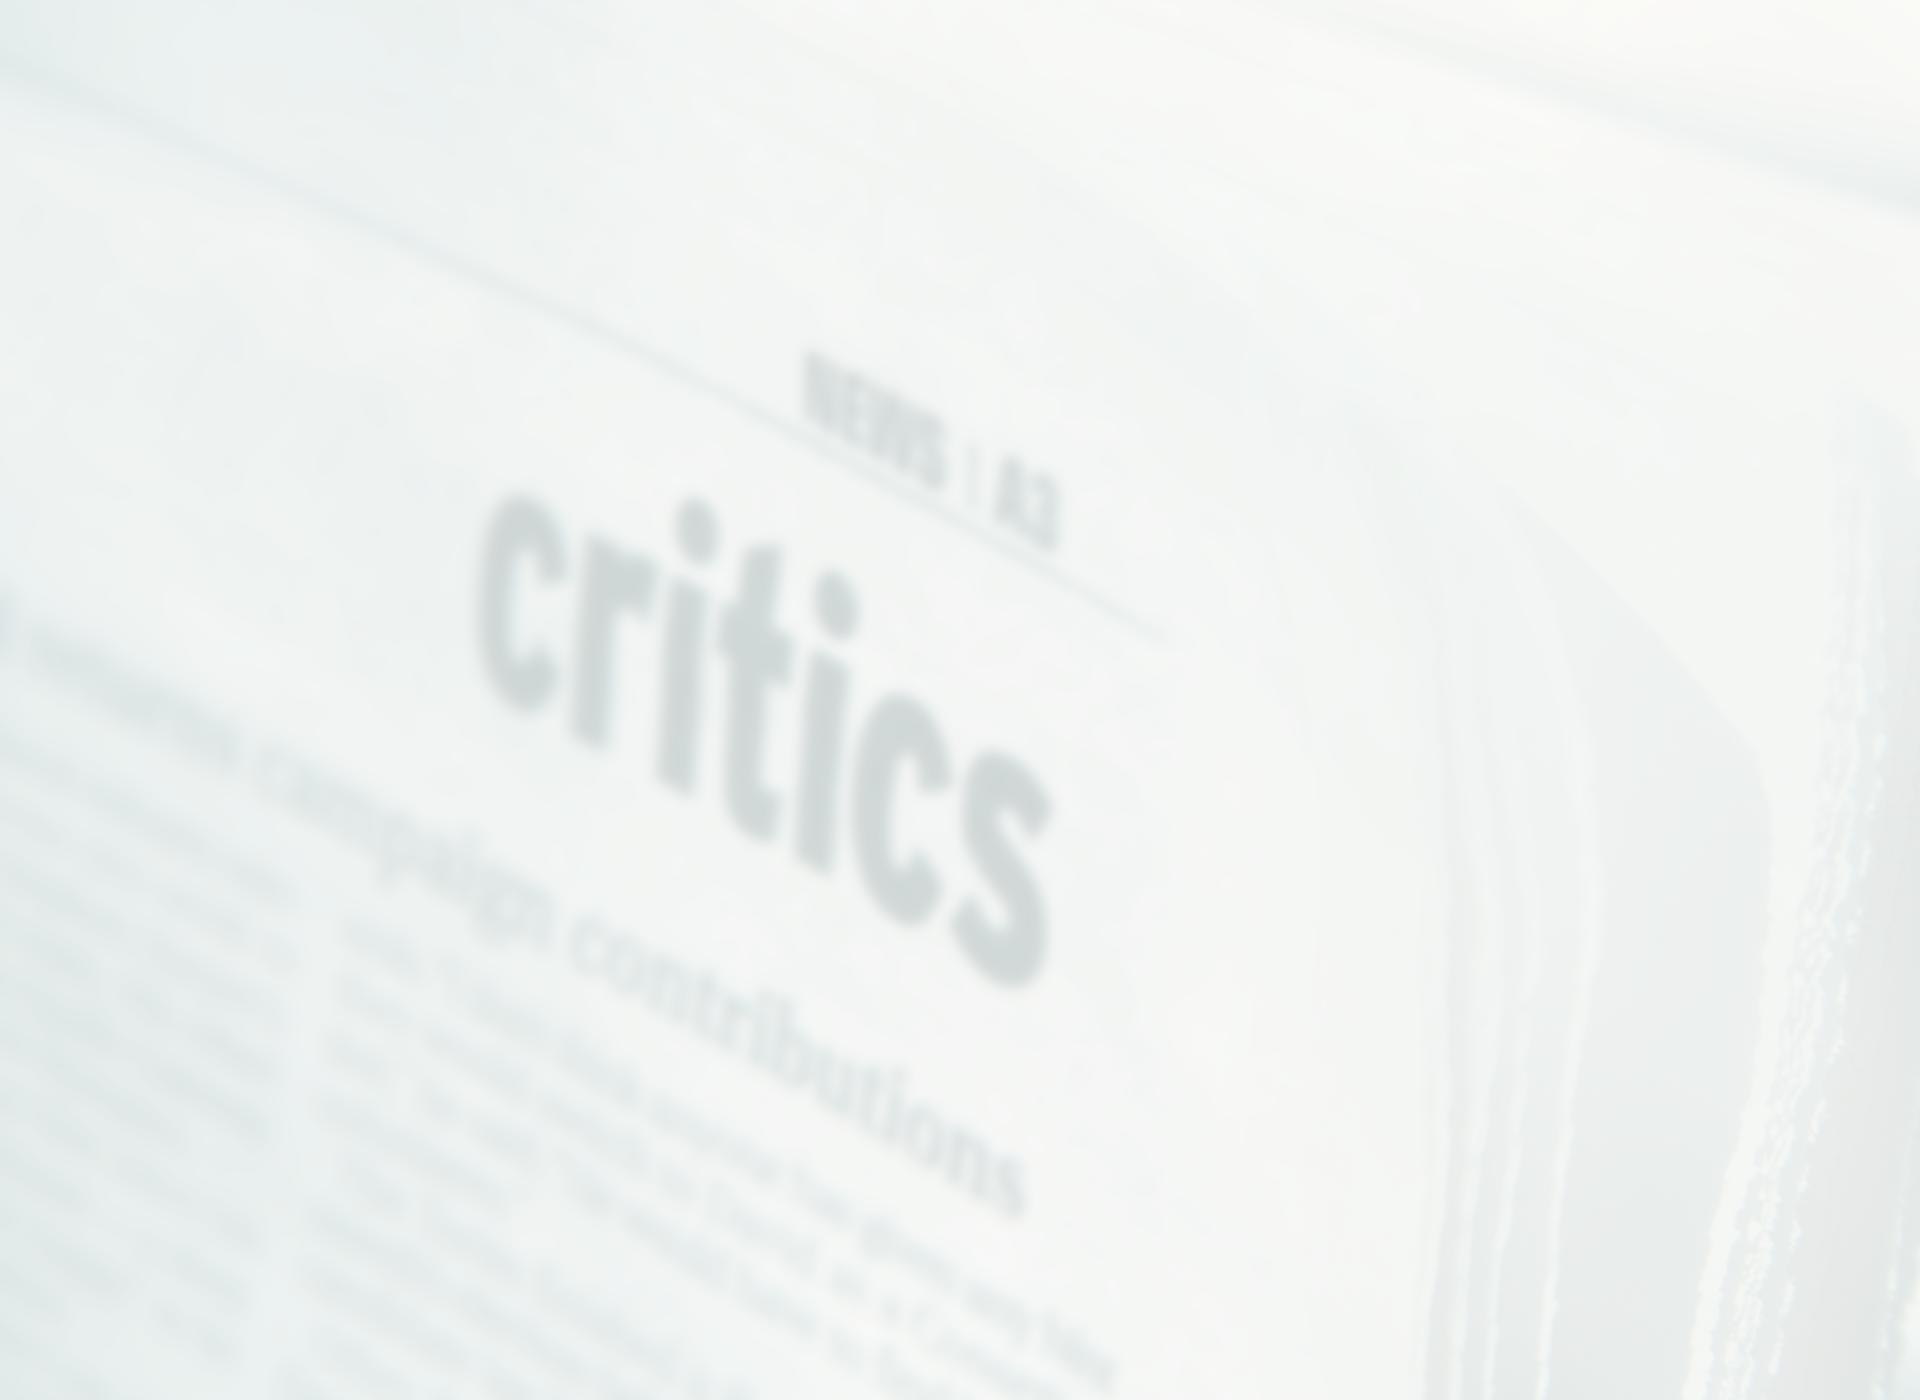 Logo of http://www.pagesuite.com/wp-content/uploads/2016/03/boston-globe-quote.png